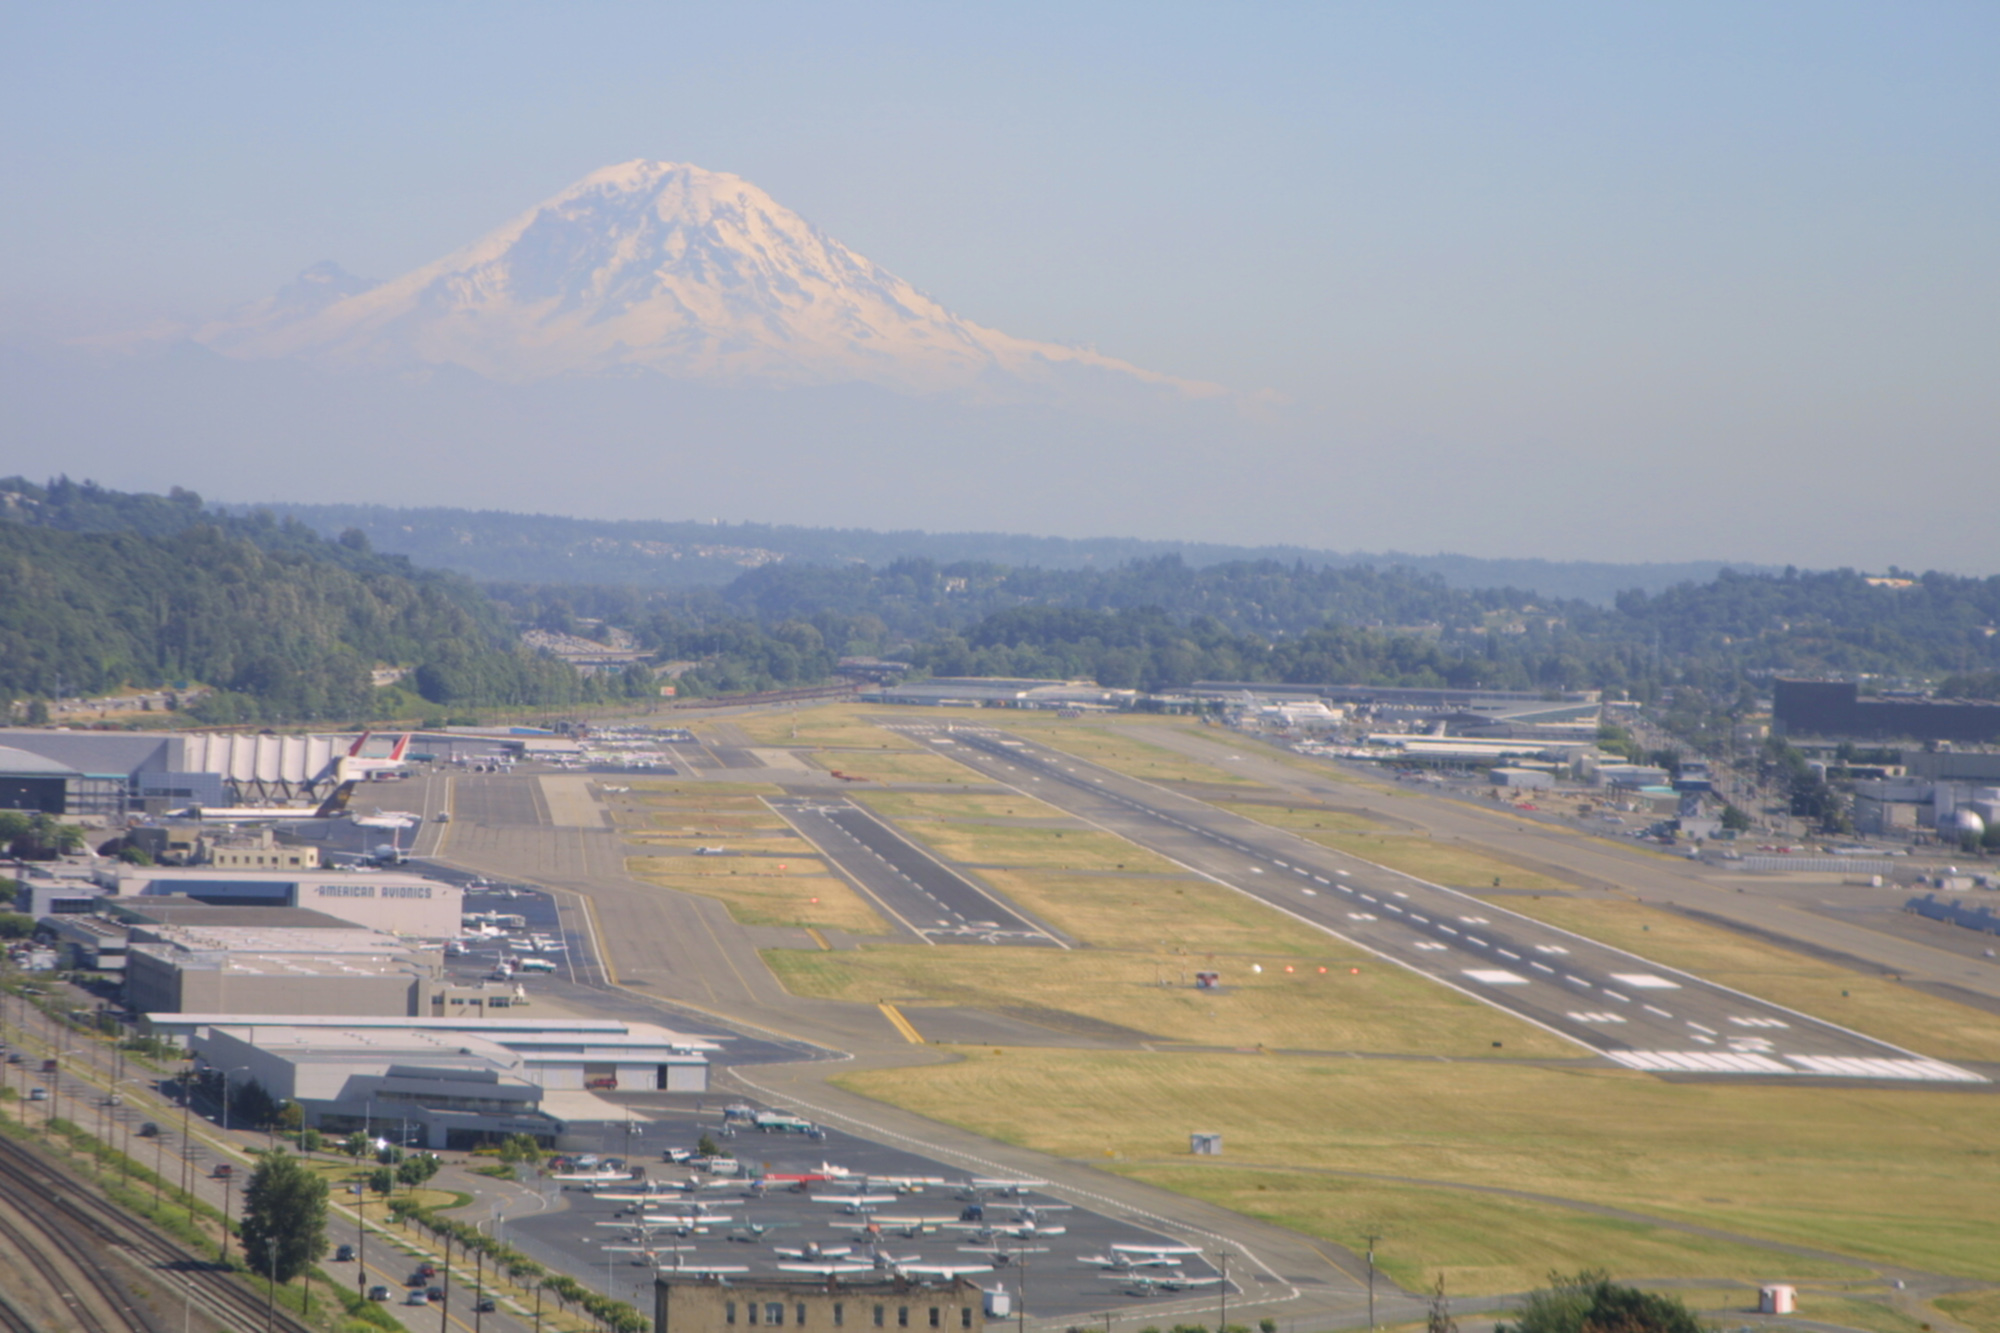 Boeing Field May Be Swapped for a Railroad Hiking Trail